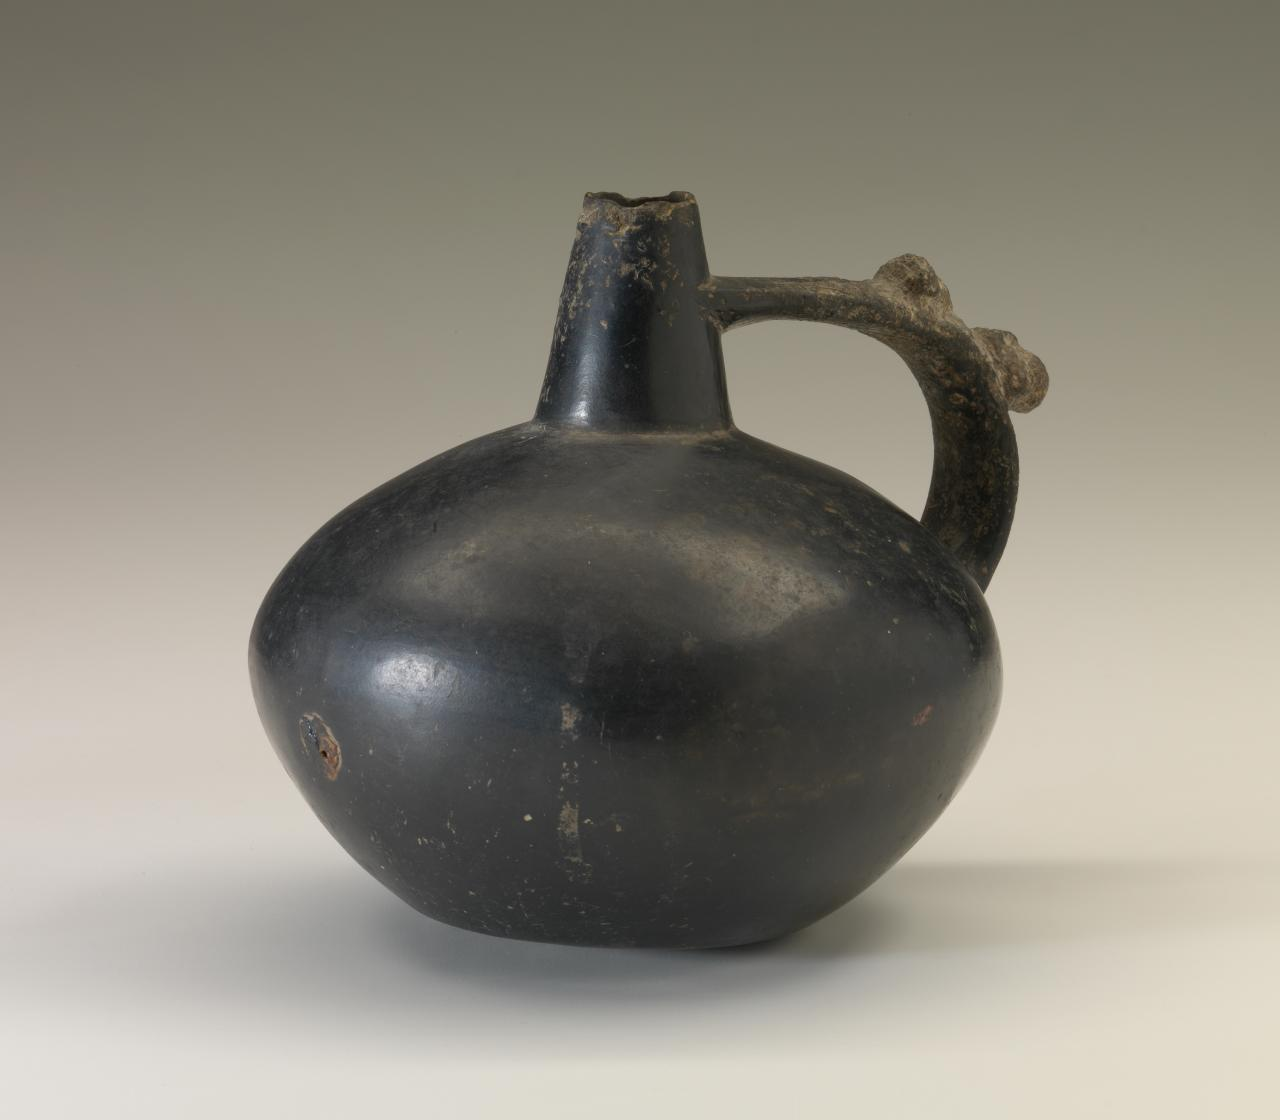 Strap-handled bottle